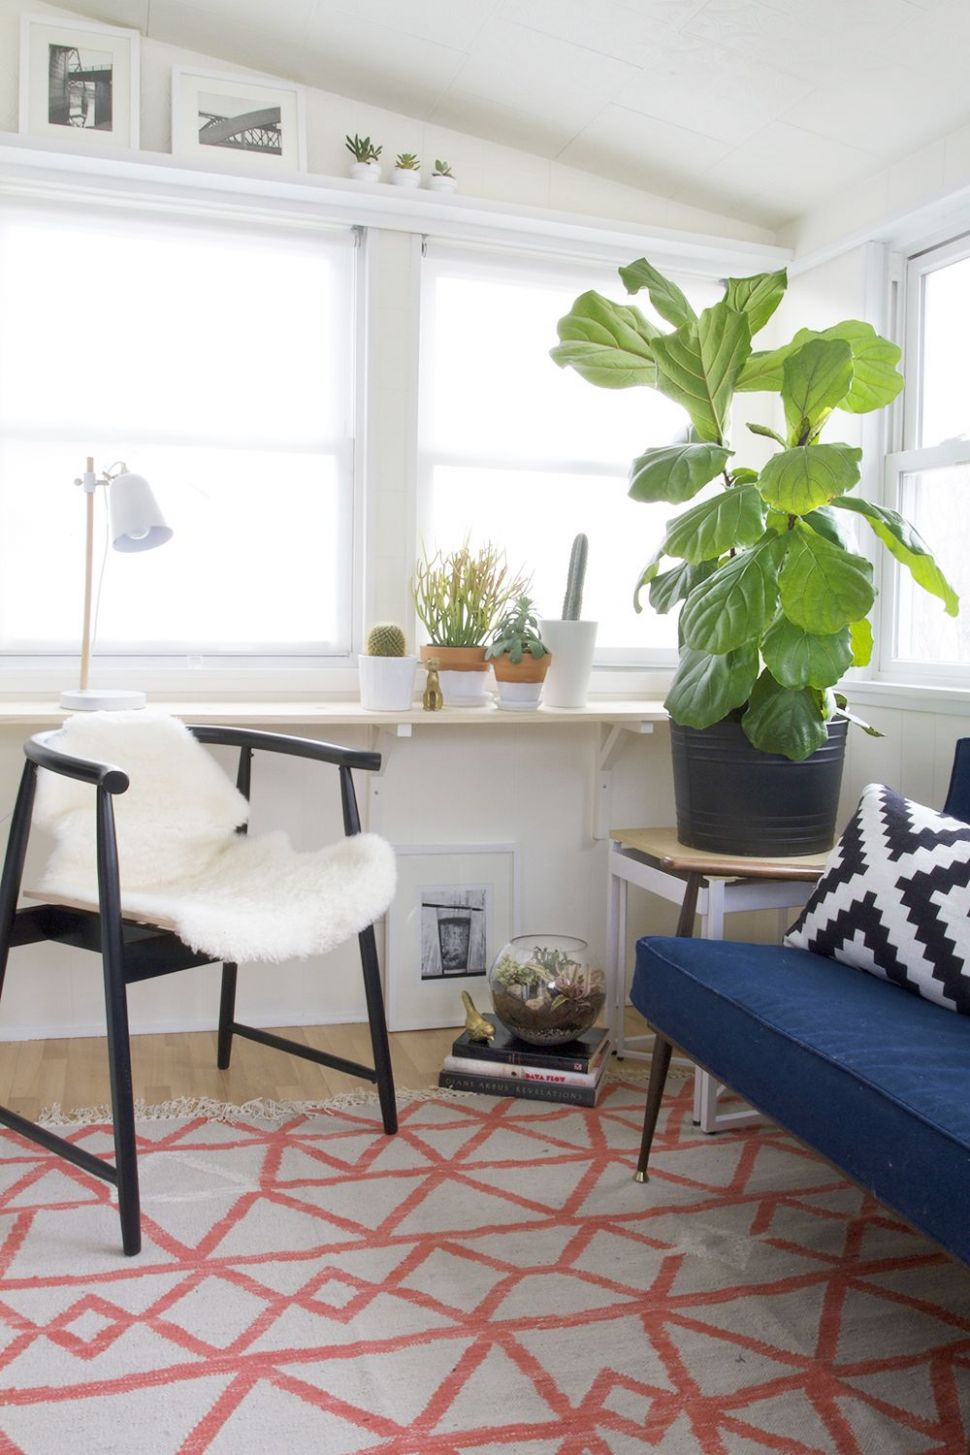 Reveal : The Sunroom - It's Done | Living room update, Space ...